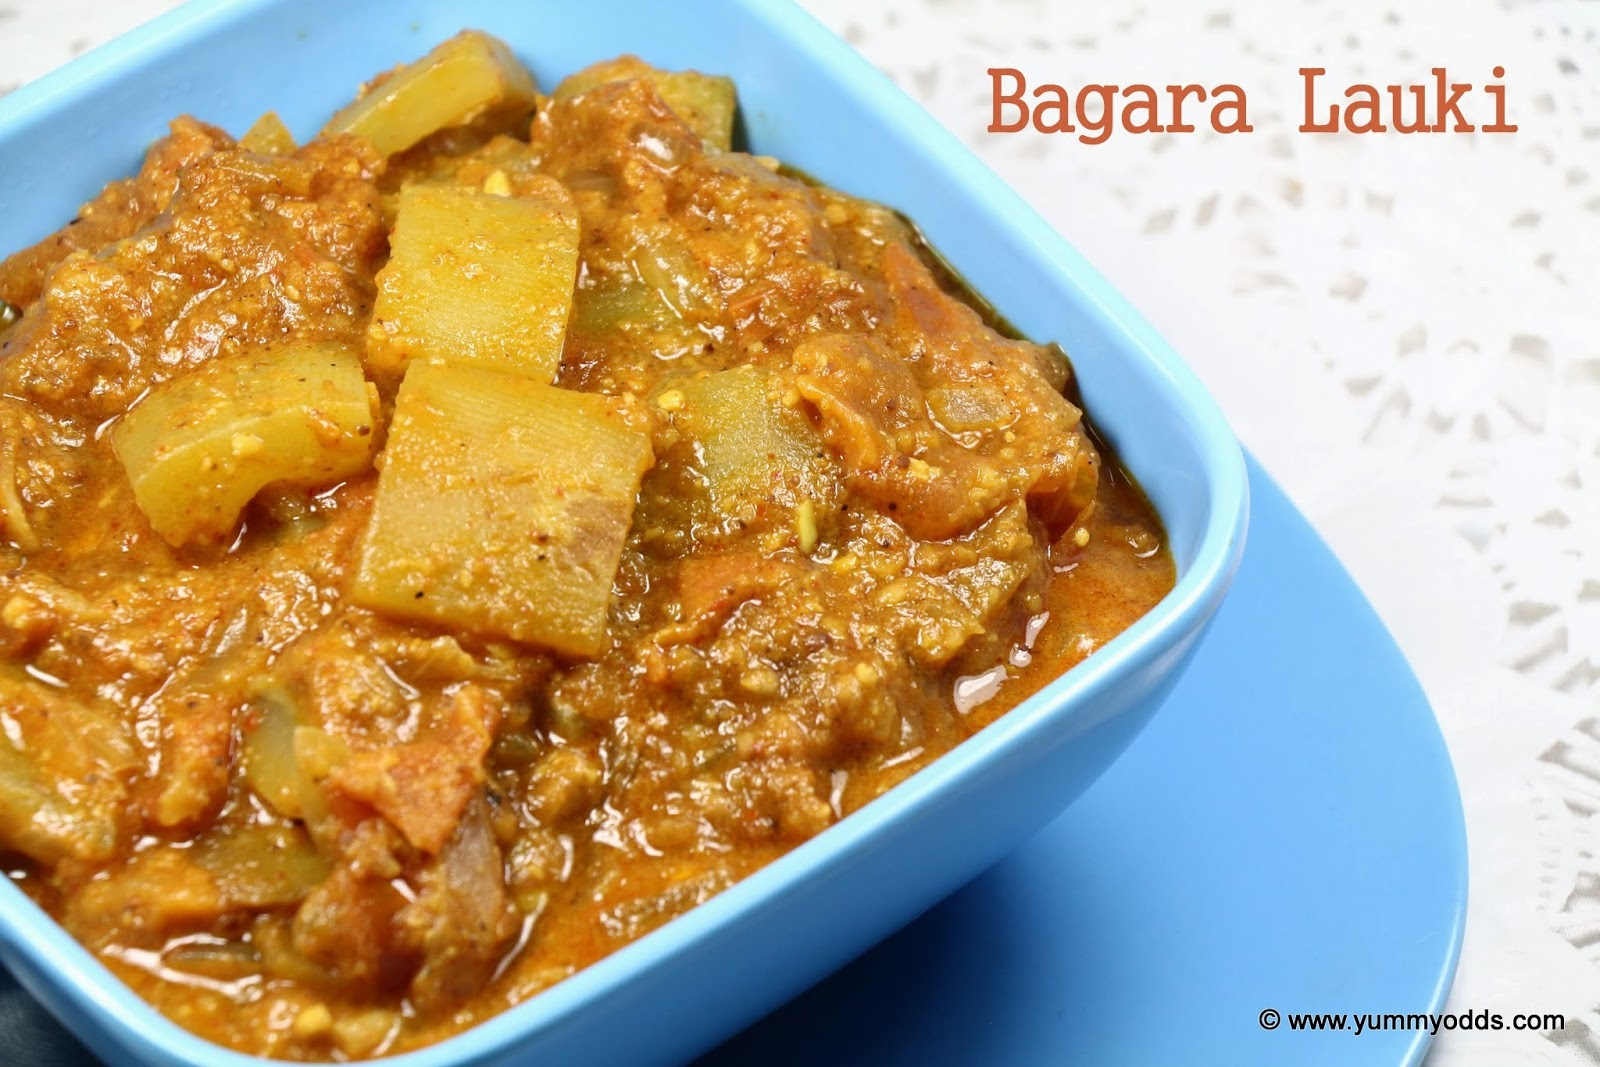 Bagara Lauki ( Bottle Gourd Masala Curry)